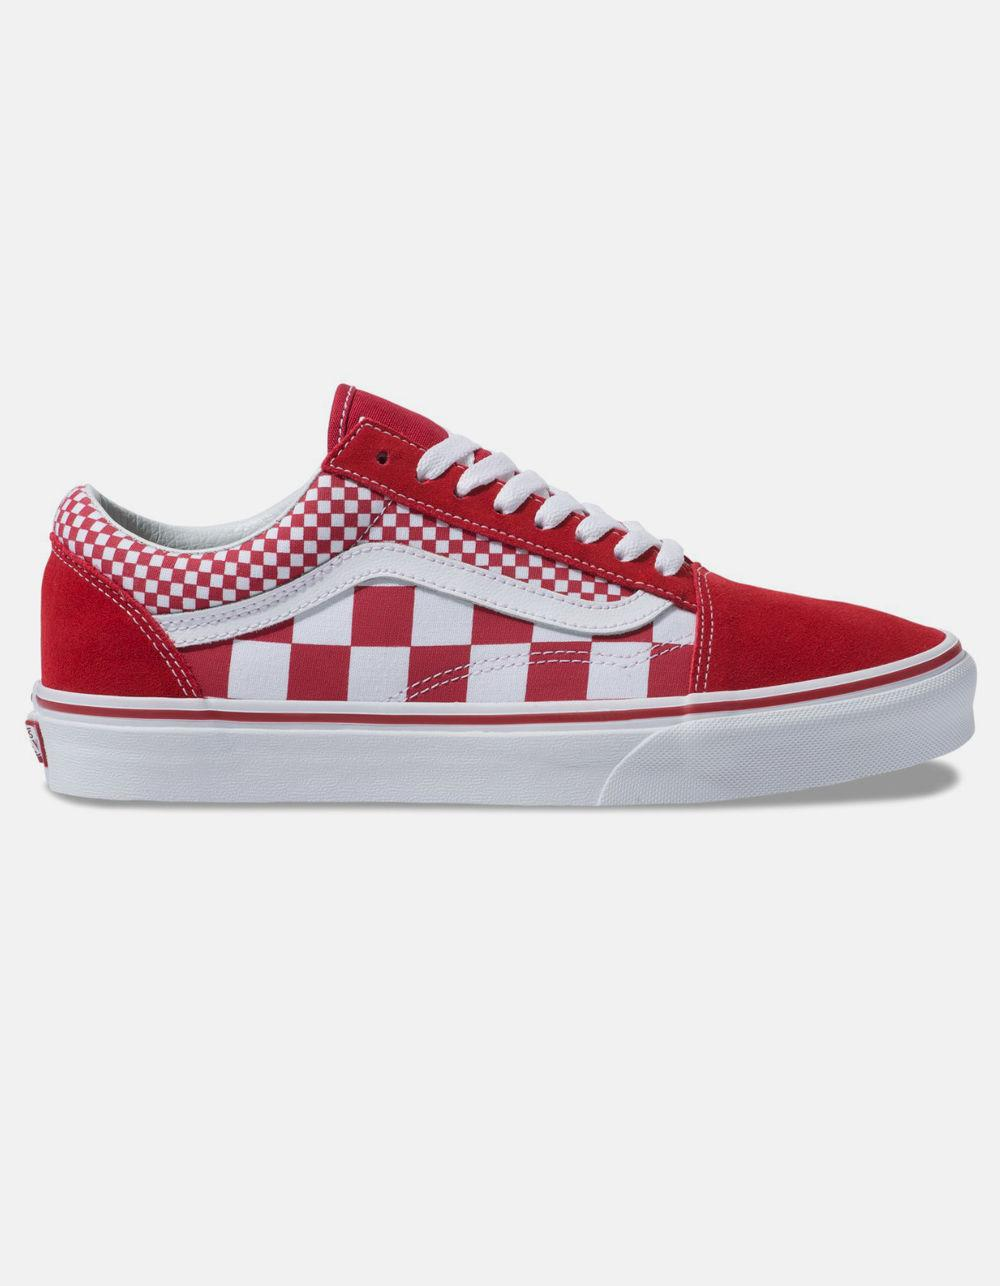 36b5560f7ef Lyst - Vans Mix Checker Old Skool Chili Pepper   True White Shoes in ...